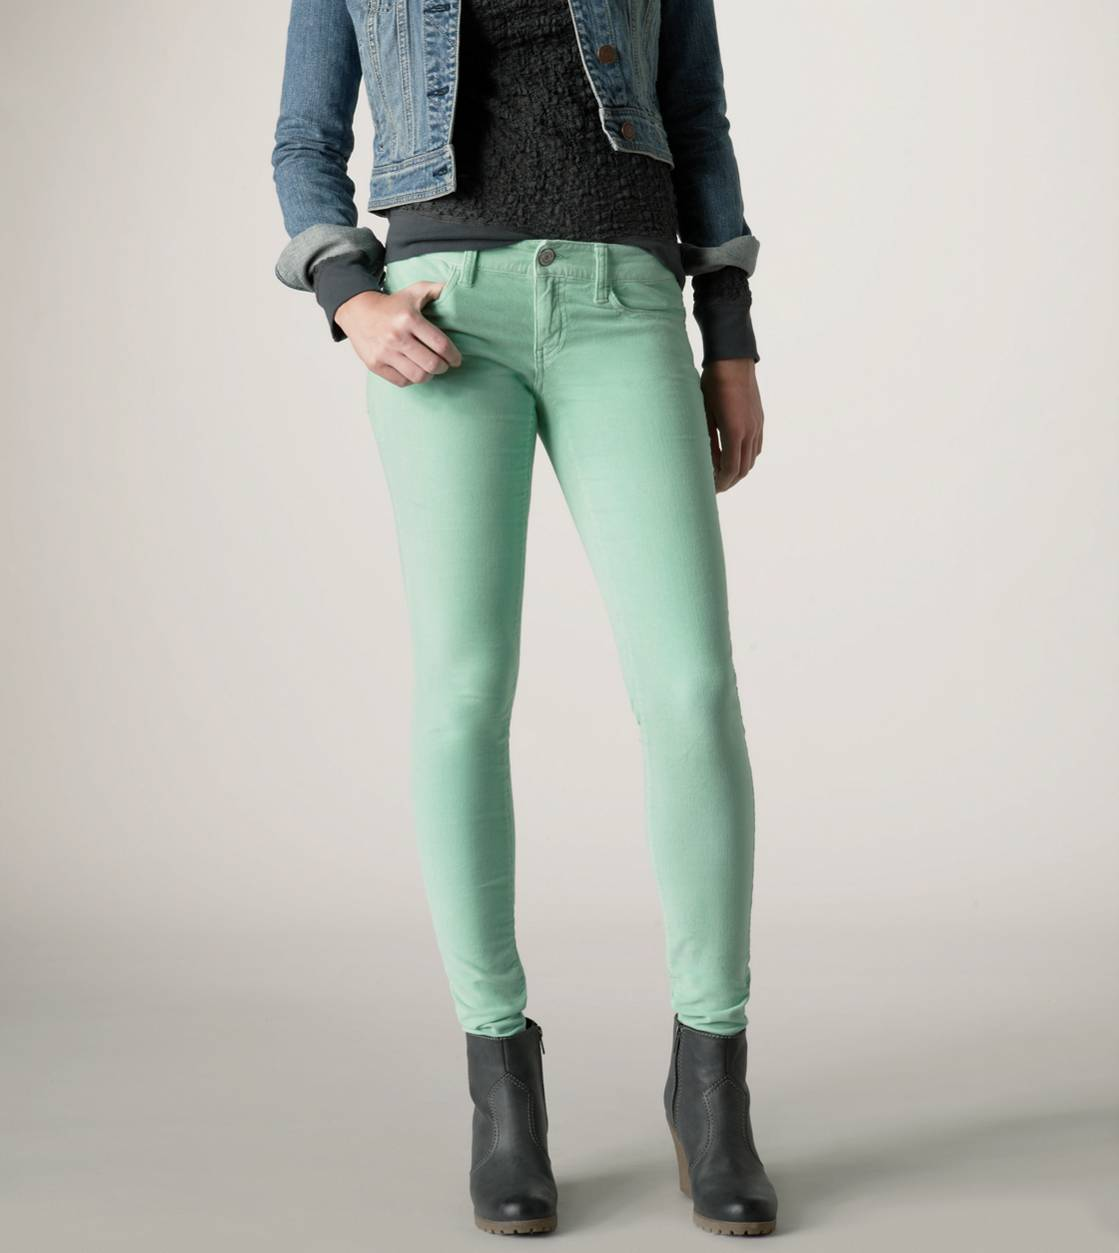 946eefb6d1a4d Corduroy Jegging | American Eagle Outfitters